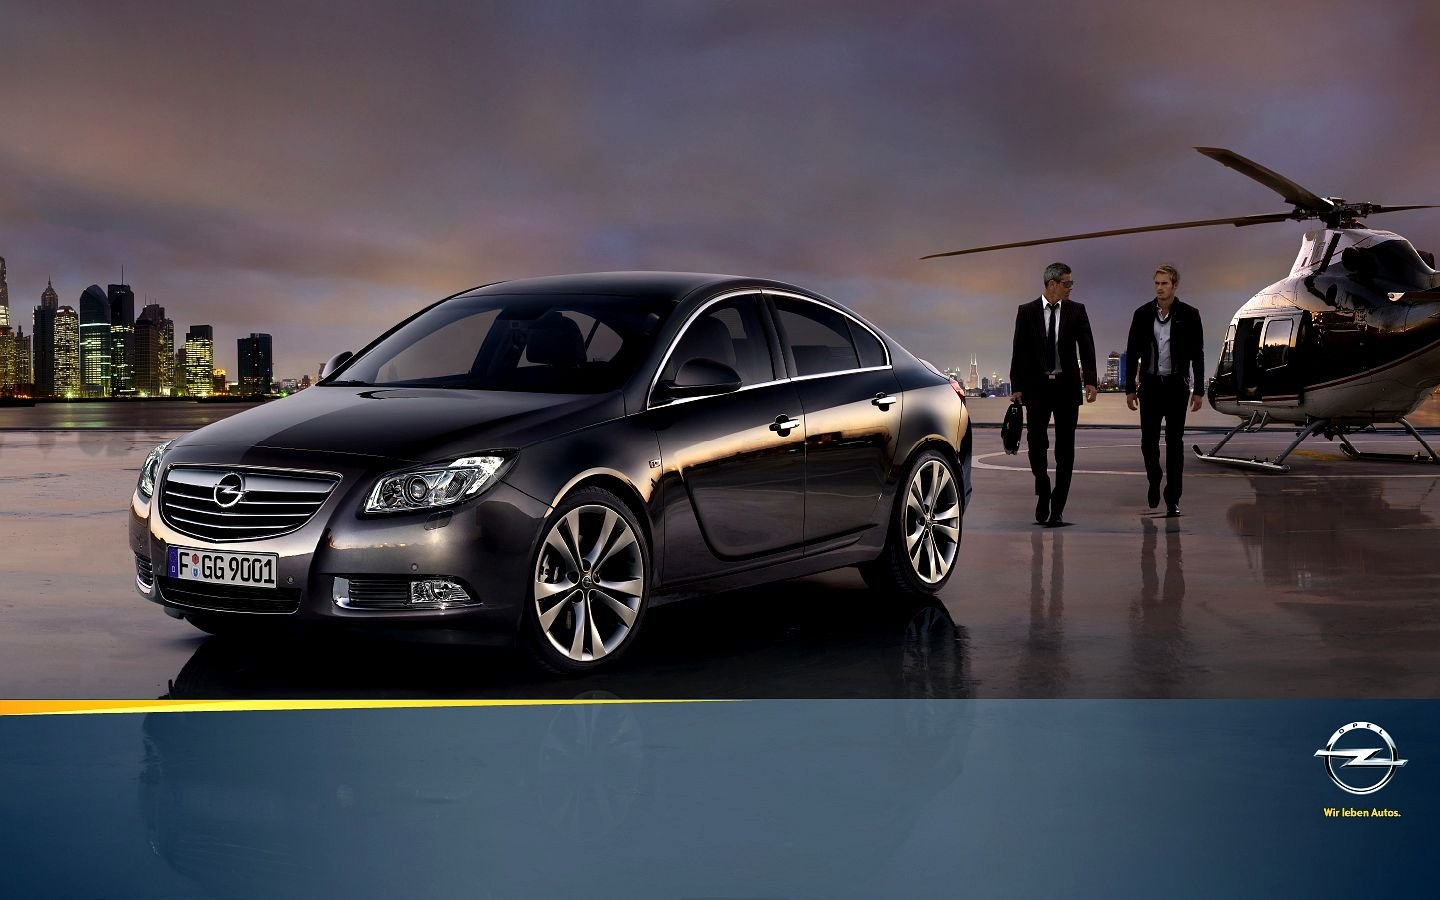 Opel Wallpapers and Background Images   stmednet 1440x900